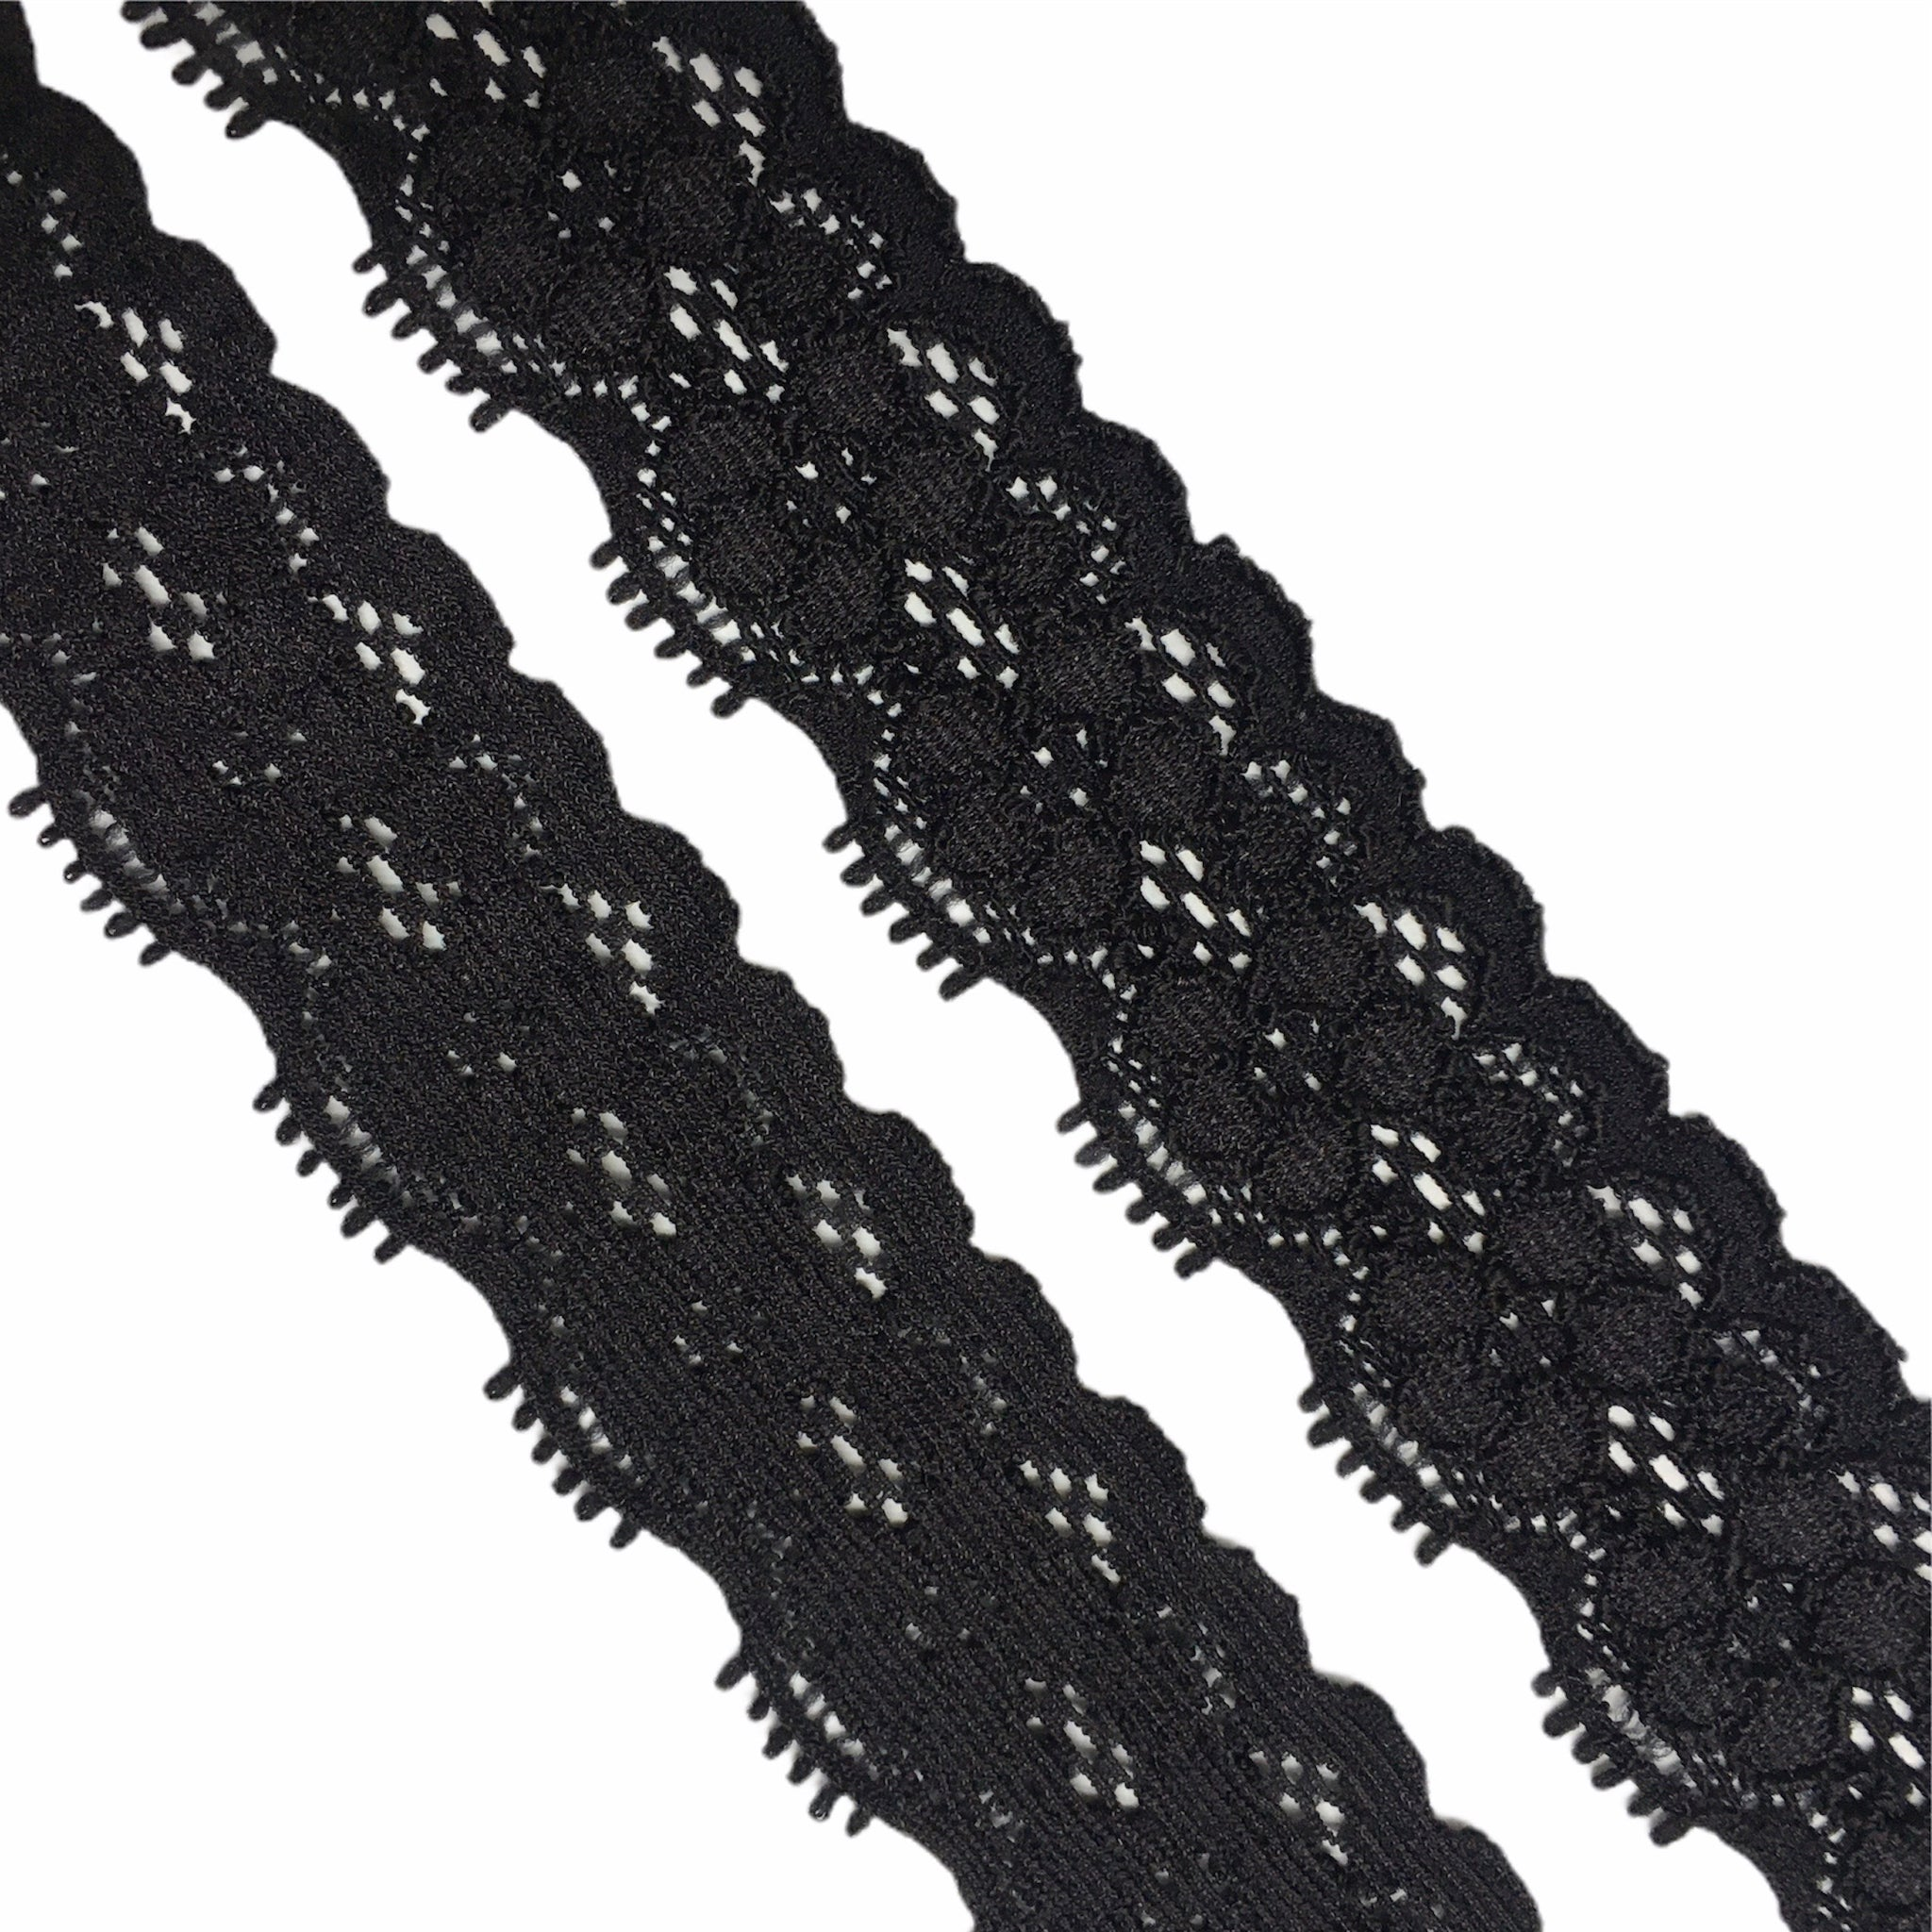 Stretch Lace ~ 25mm 'Black'